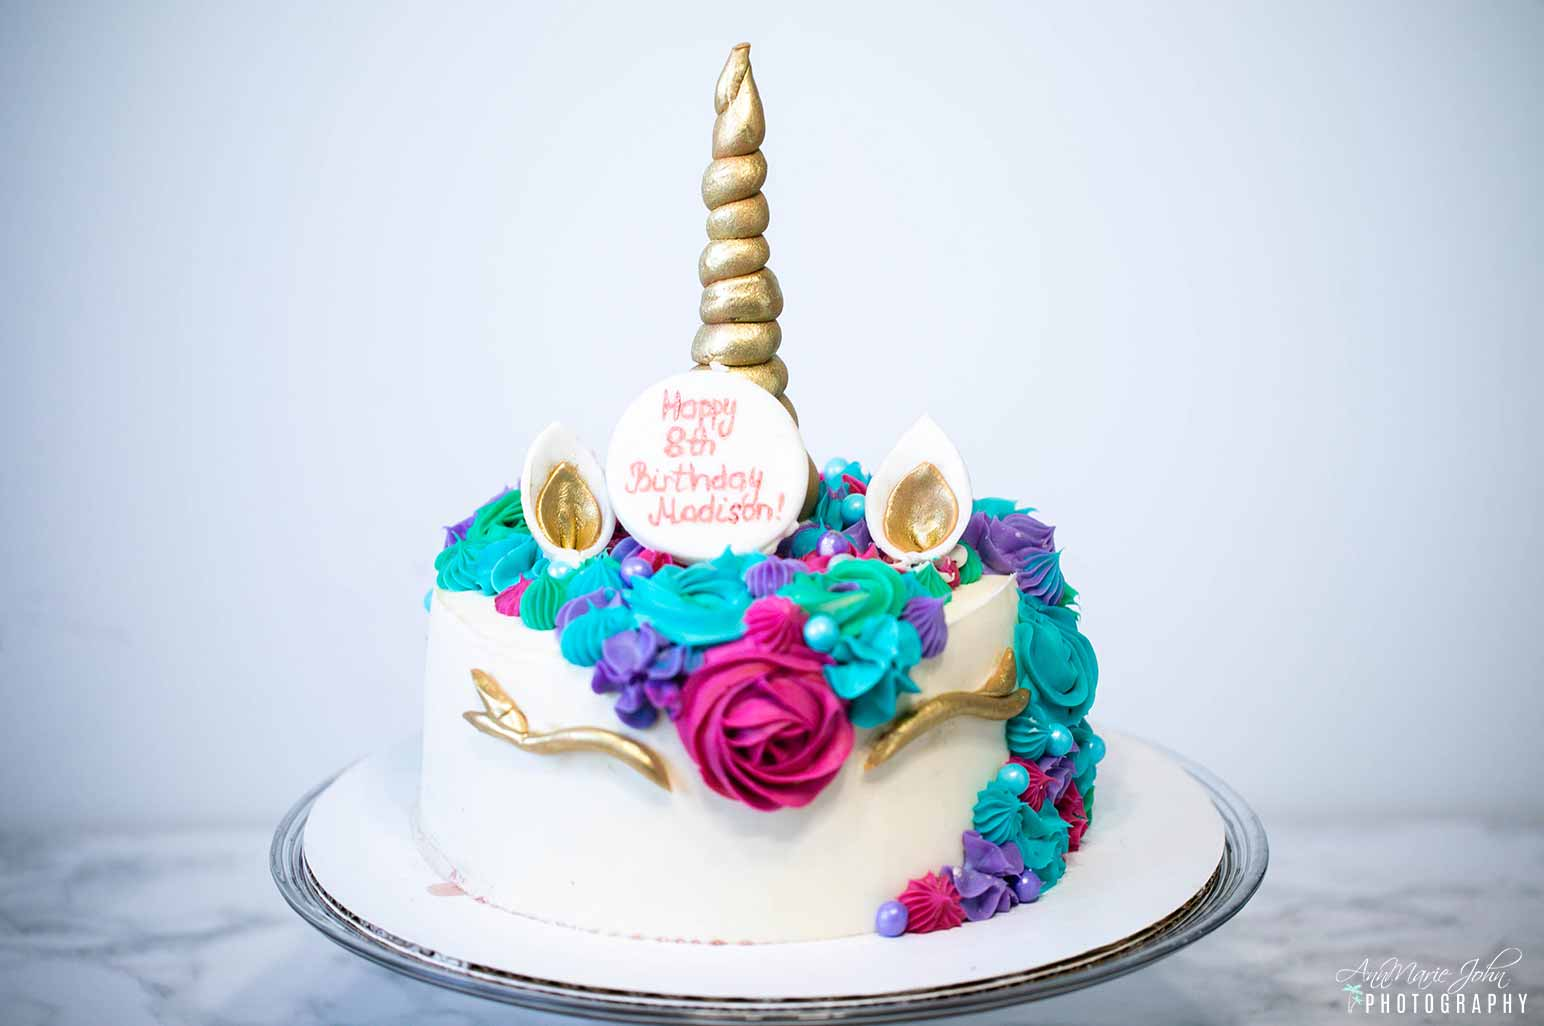 Unicorn Birthday Cake - Celebrating Birthdays and Milestones During a Quarantine